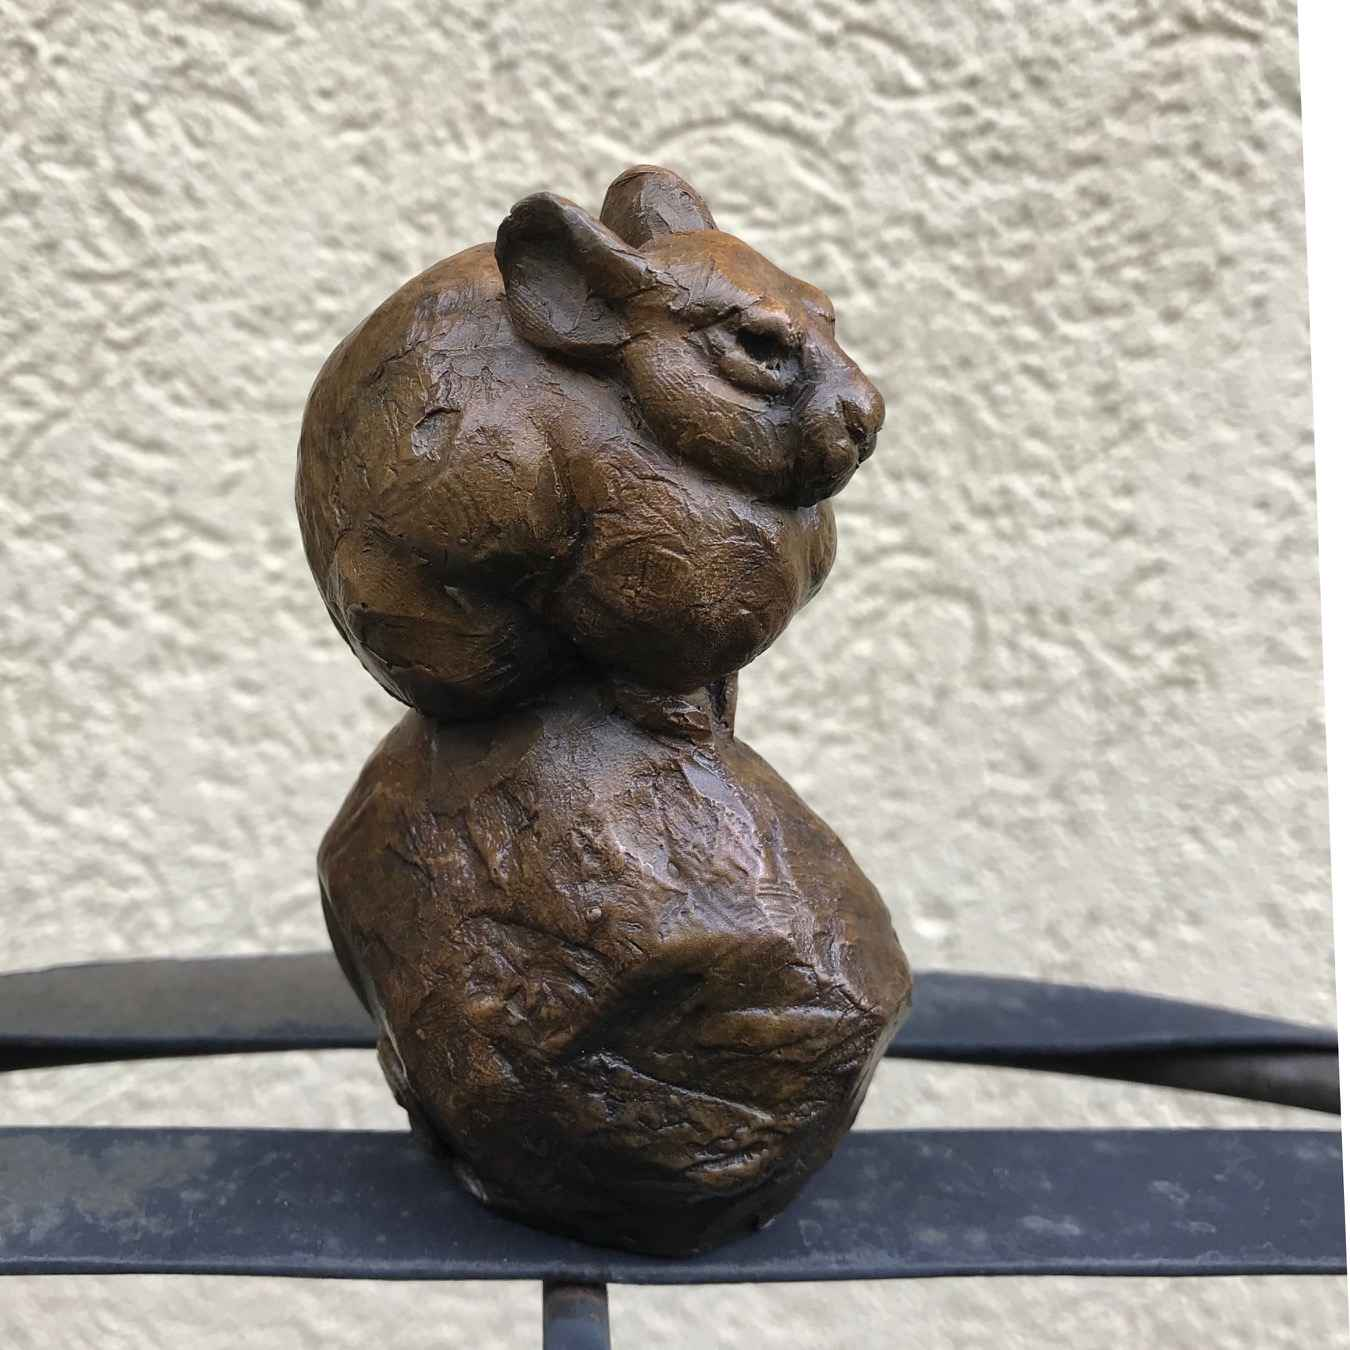 Pika Perch 23/100 by Mr. Tim Shinabarger - Masterpiece Online